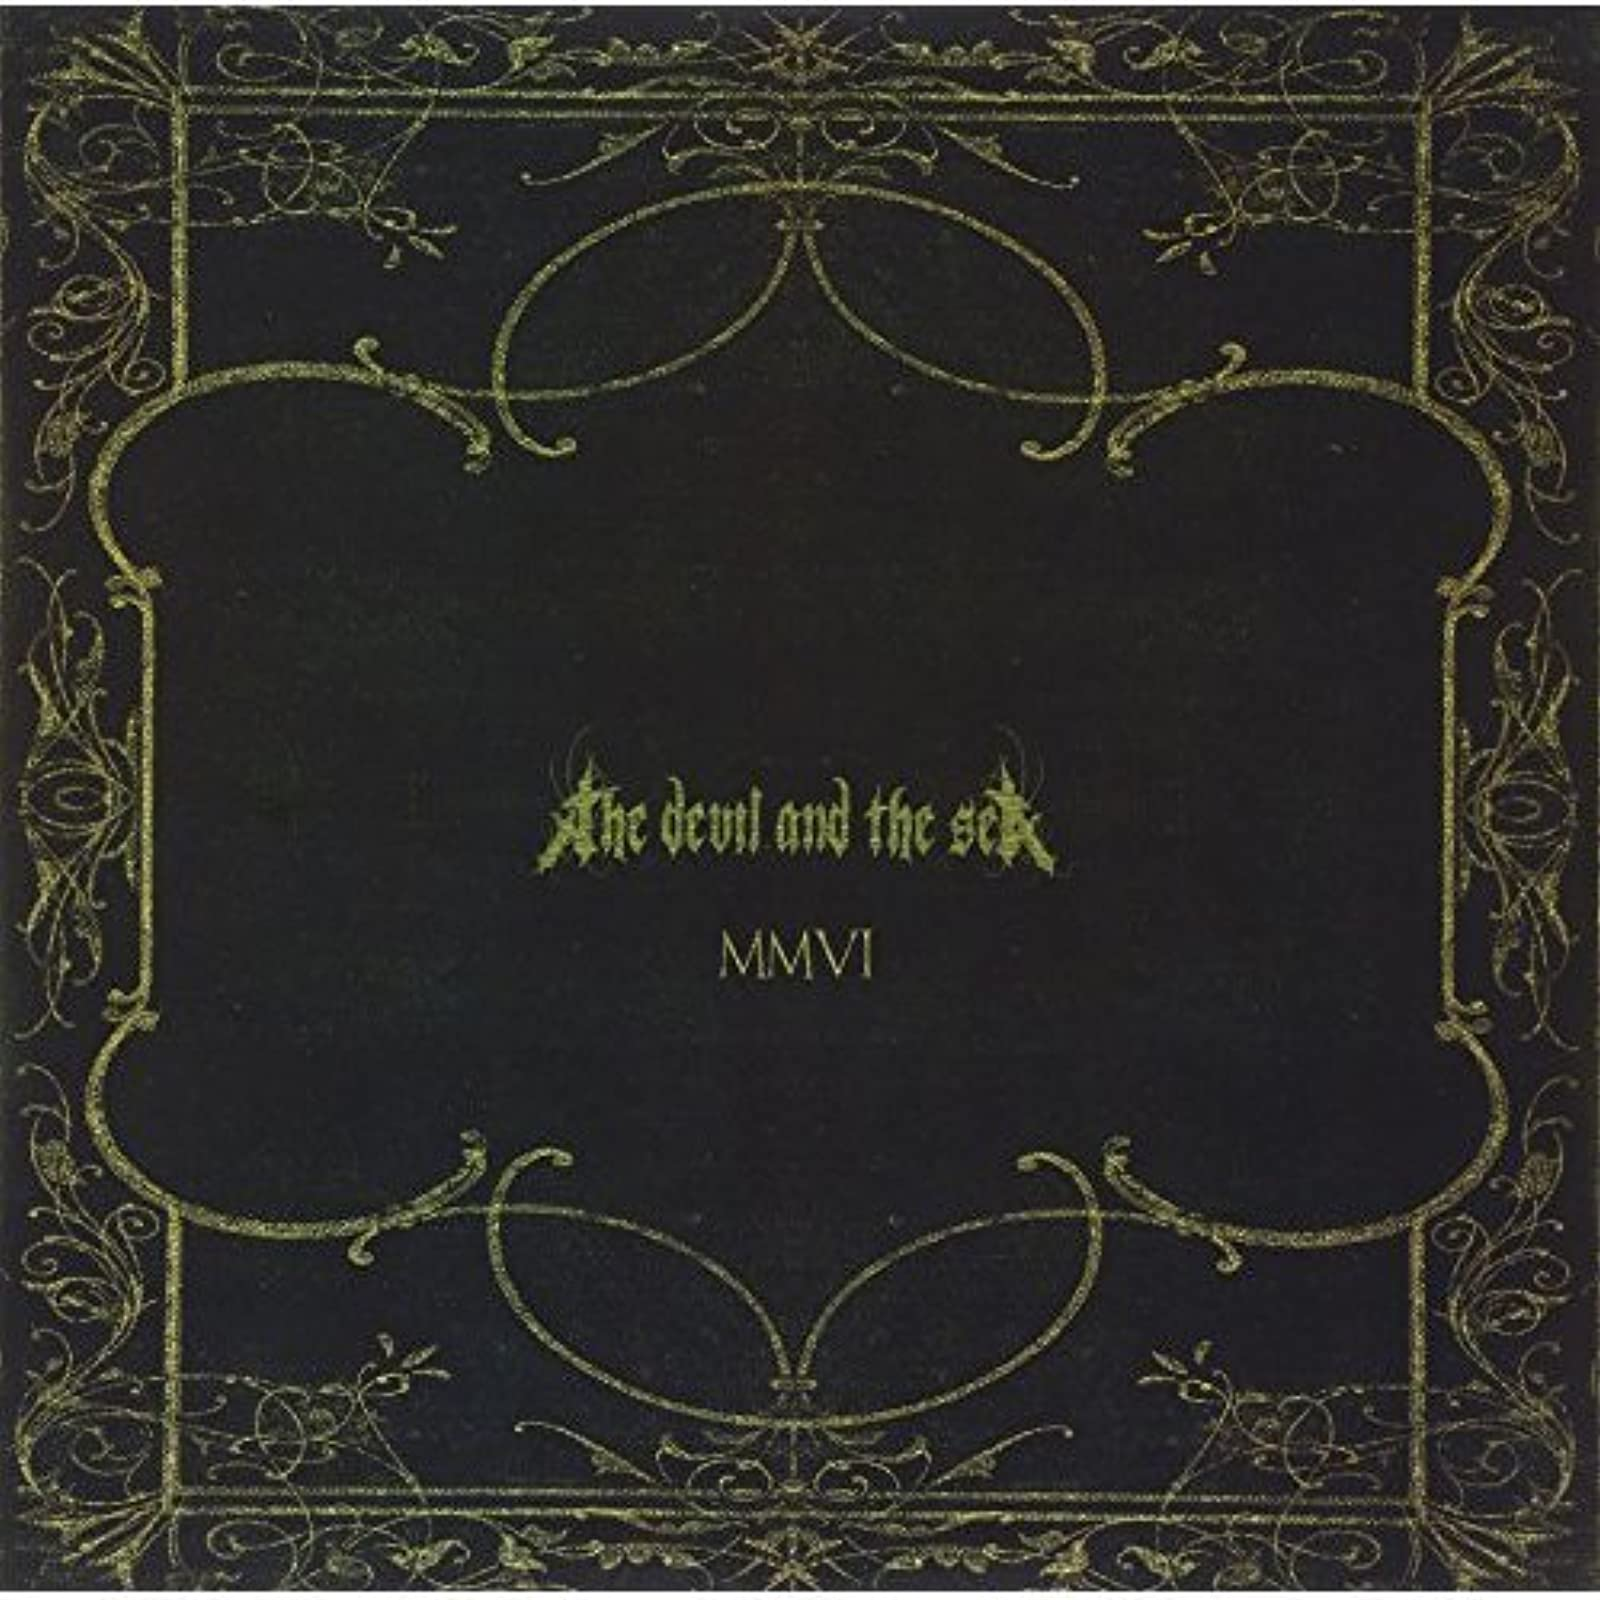 Mmvi By Devil And The Sea On Vinyl Record